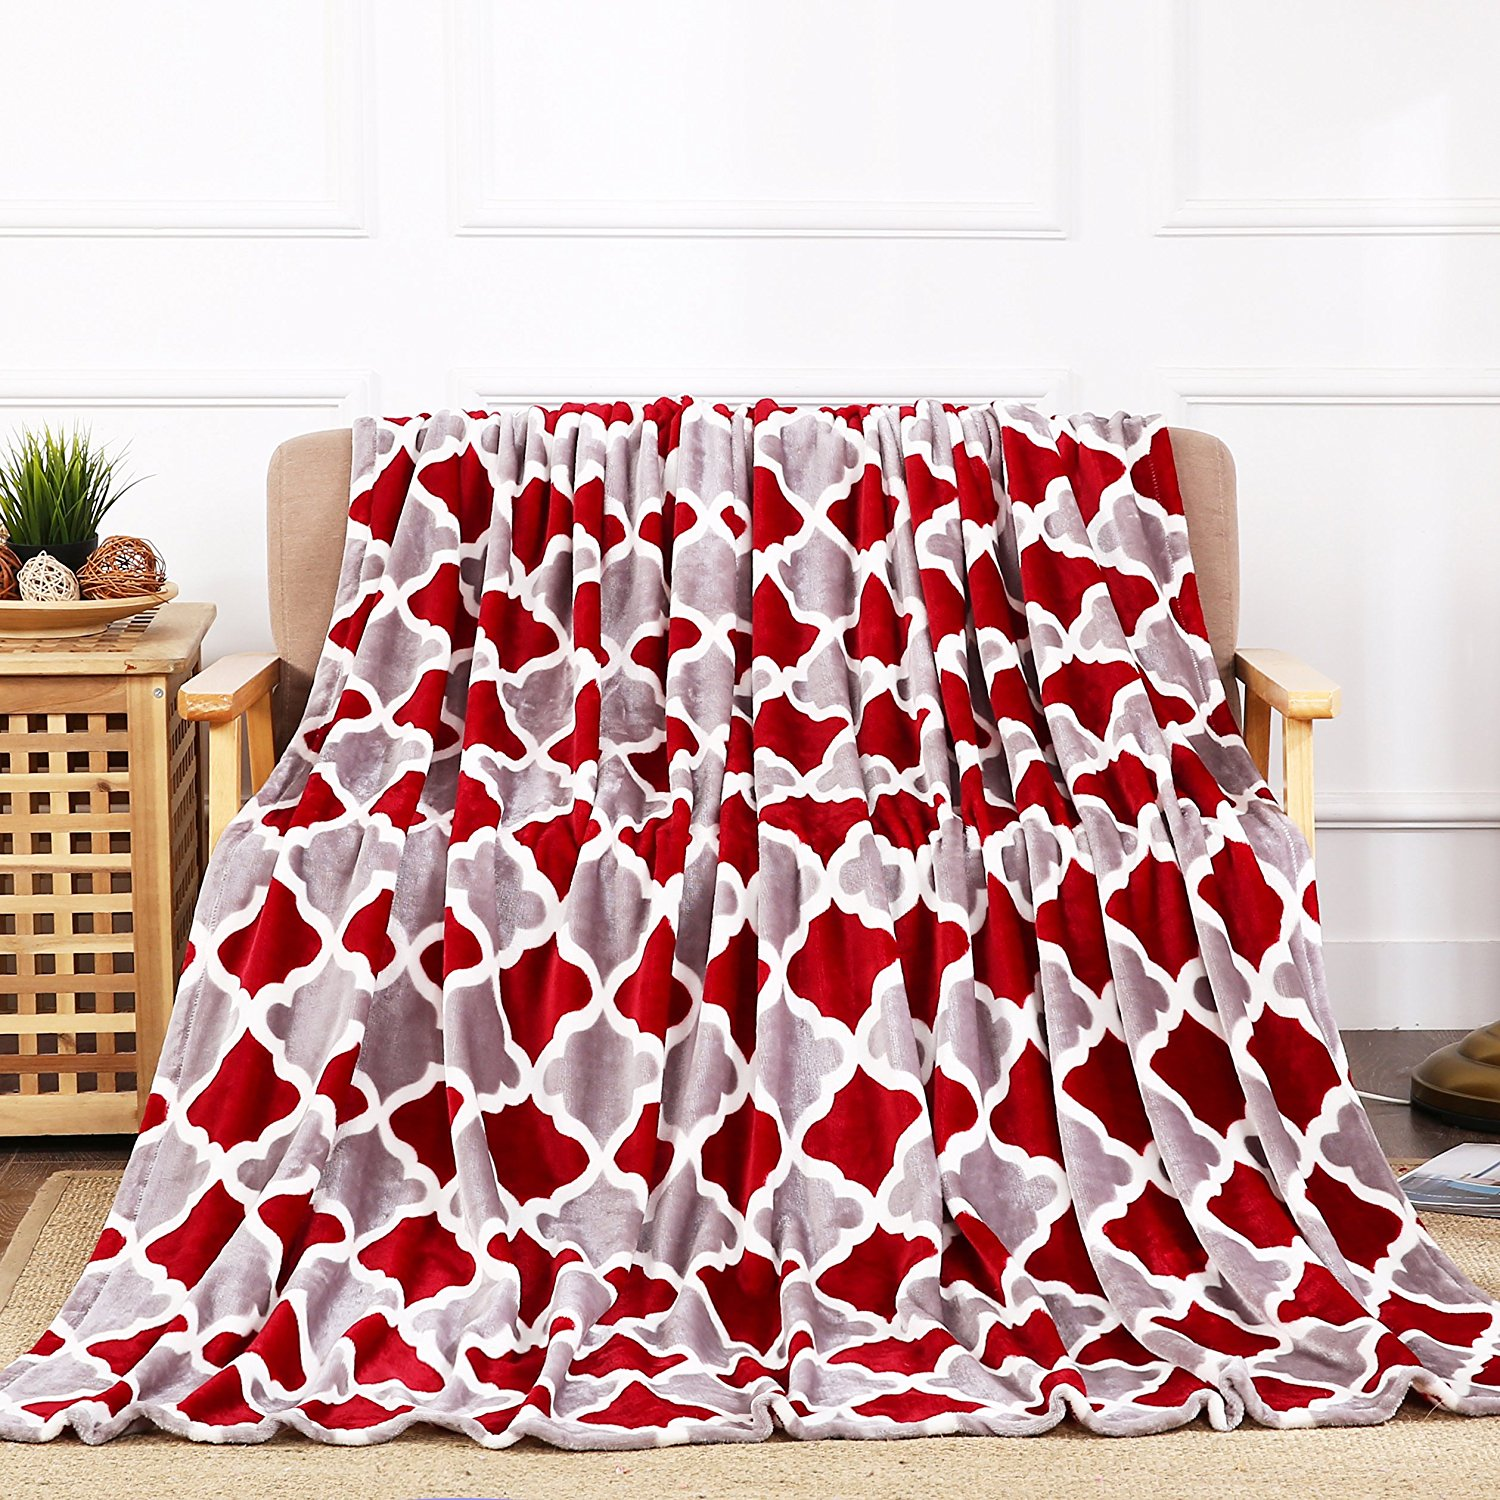 All American Collection New Super Soft Printed Throw Blanket (Throw Size Size, Wine/Grey Trellis)